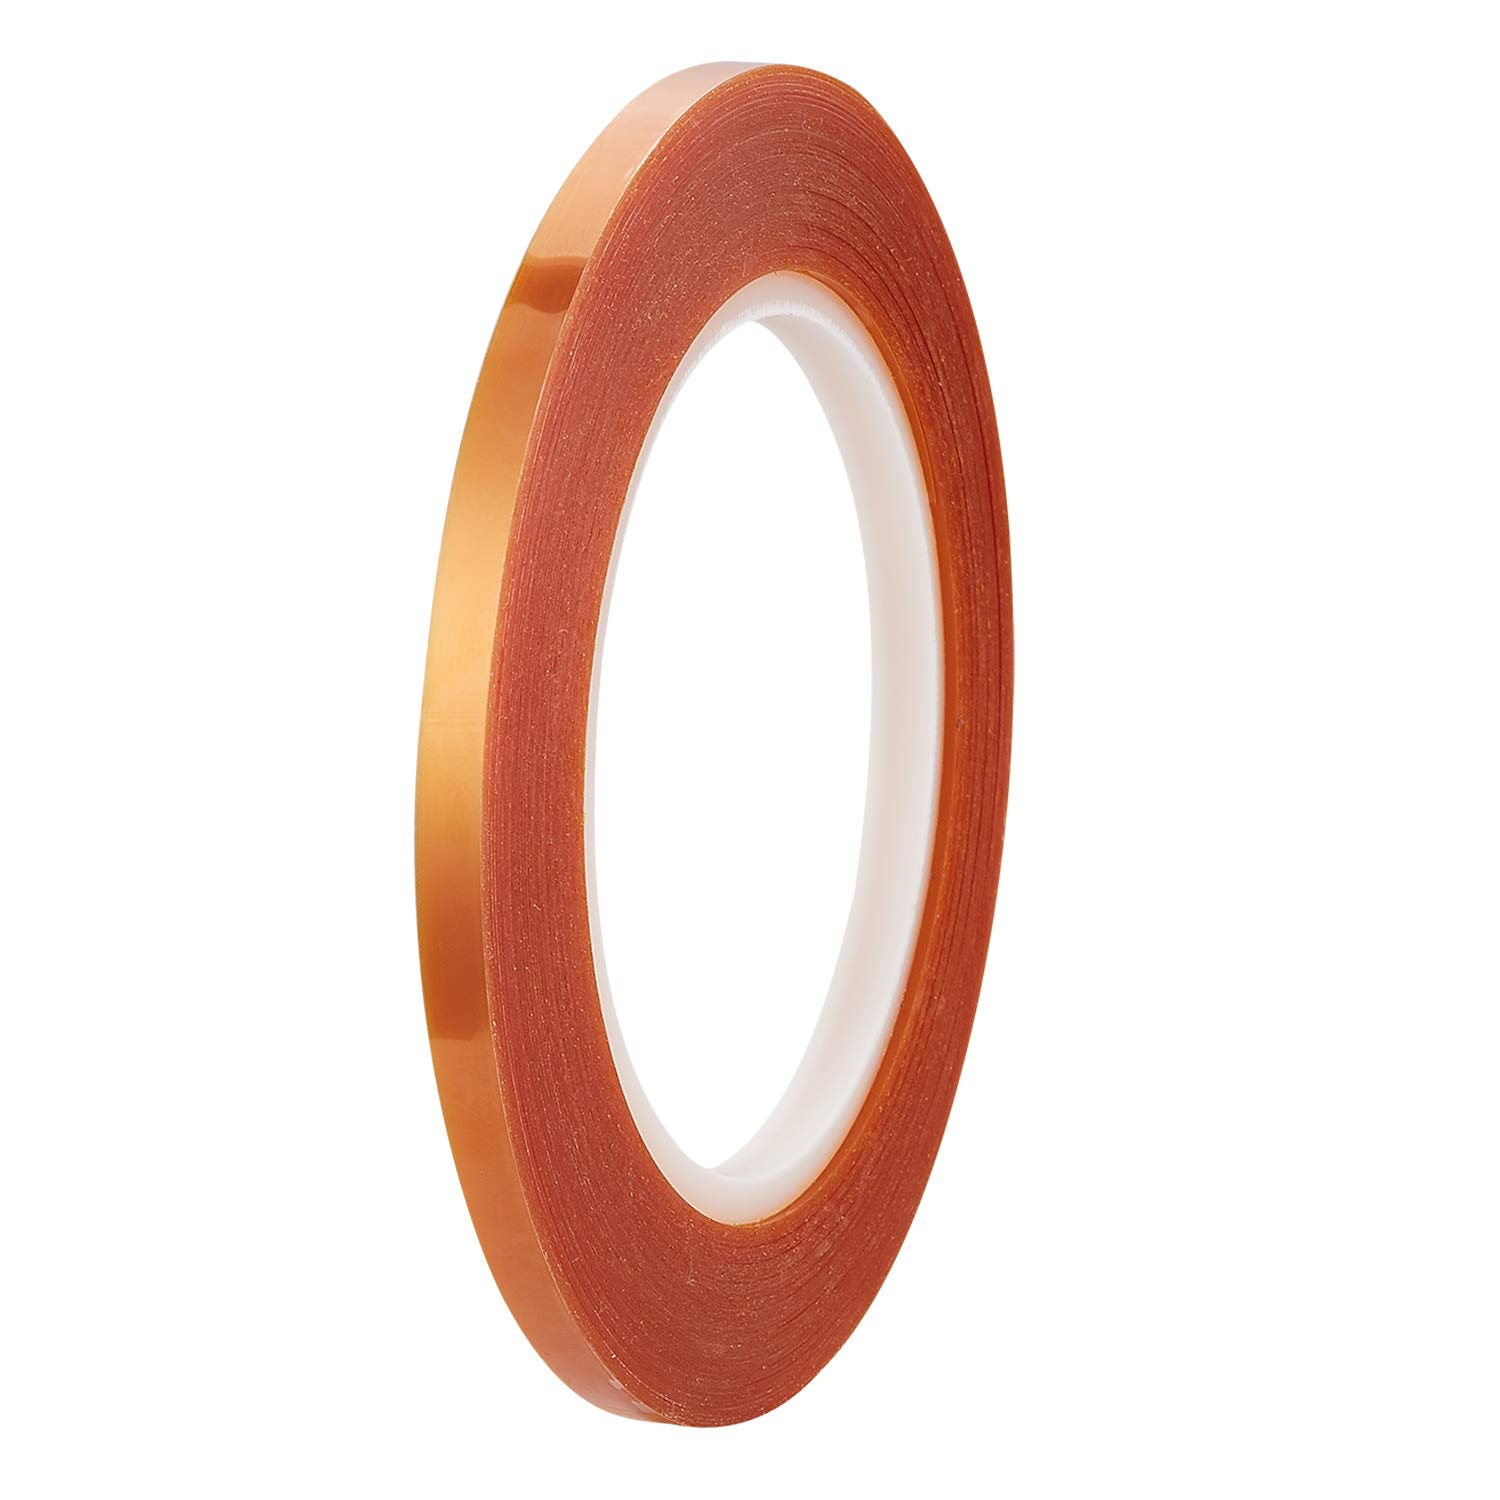 High Temp Tape, Double Sided Silicone Adhesive Tape, Double Sided Polyimide Tape for 3D Printing,Electric Task,Soldering, Insulating Circuit Boards, 1/4' Wide x 36 Yards Long 1 Mil Thick on a 3' Core